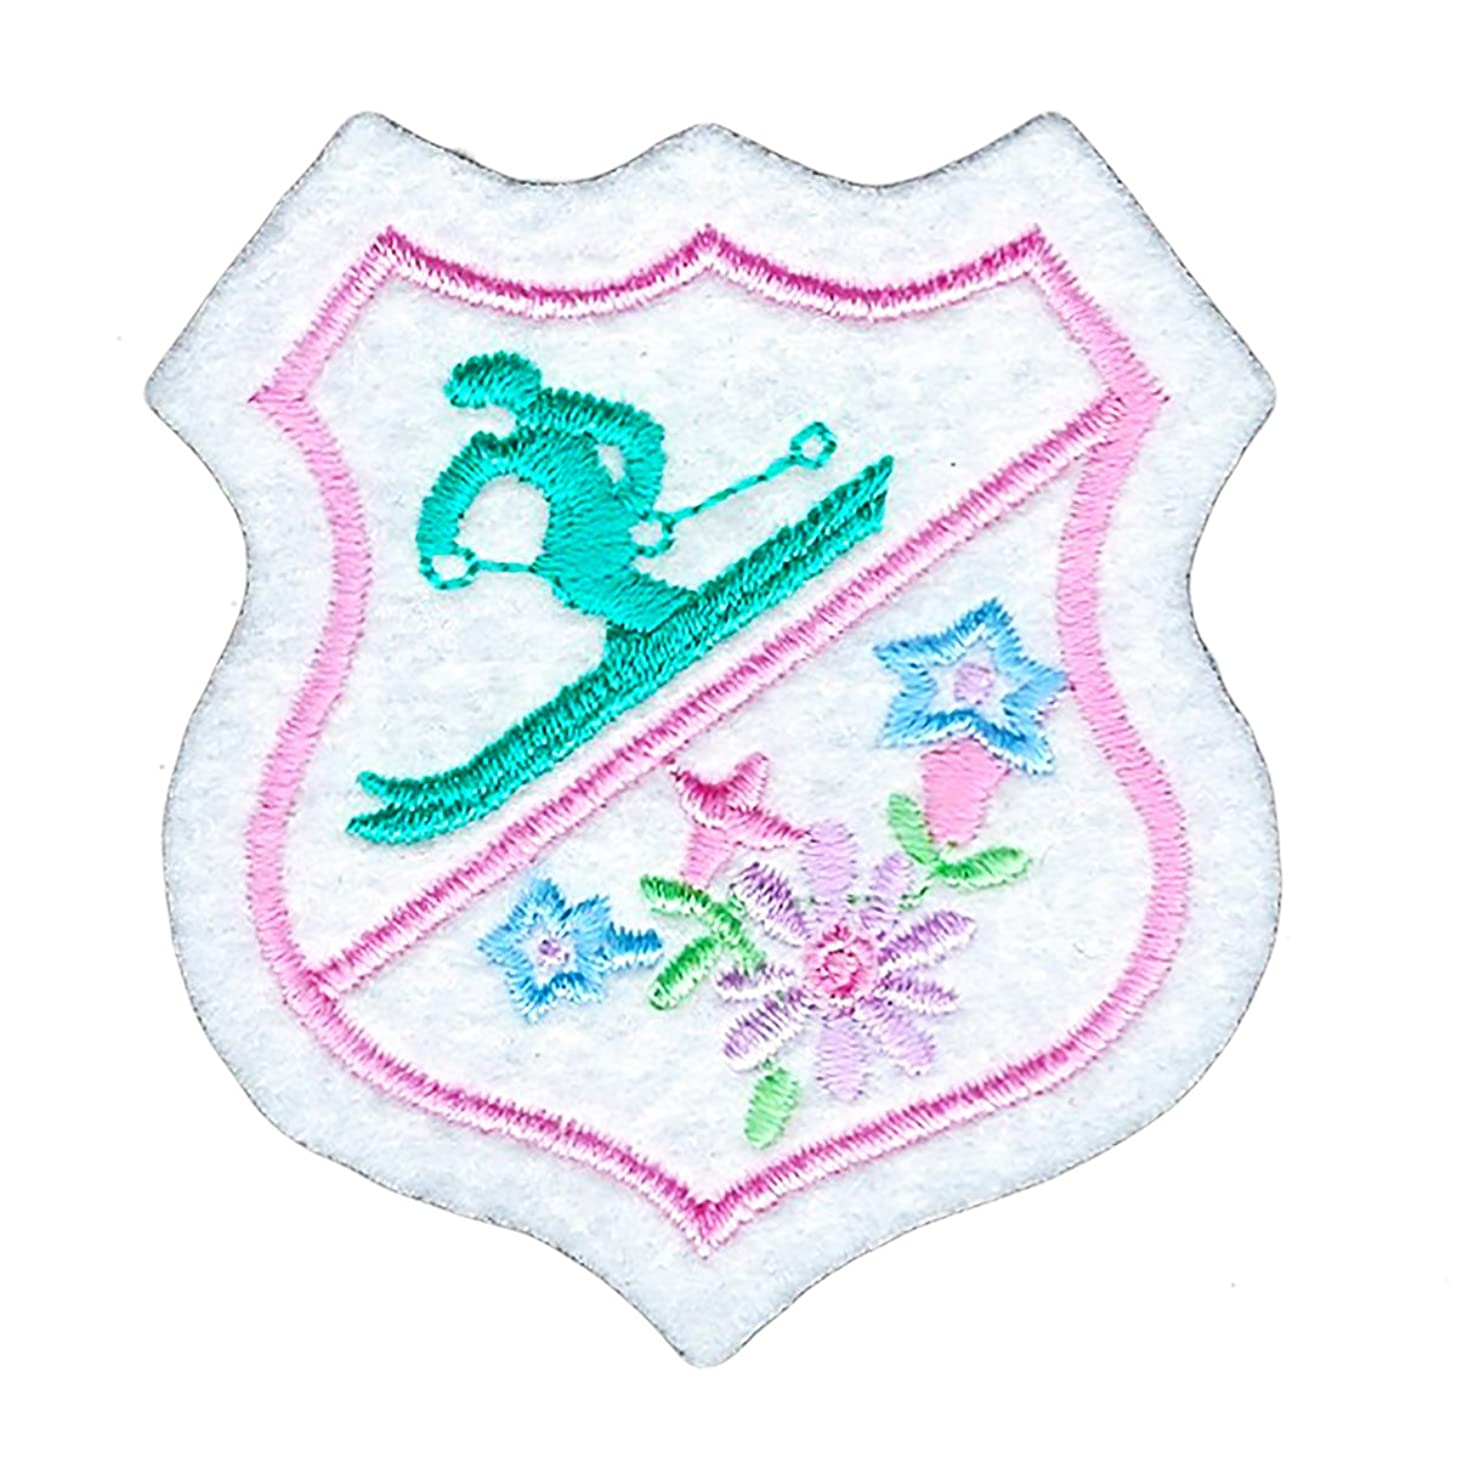 Ski Winter Snow Flowers Shield Badge Iron on Patch Decoration Embroidered Applique for DIY Jeans Jacket Clothing Handbag Shoes Caps and Any Crafts Project